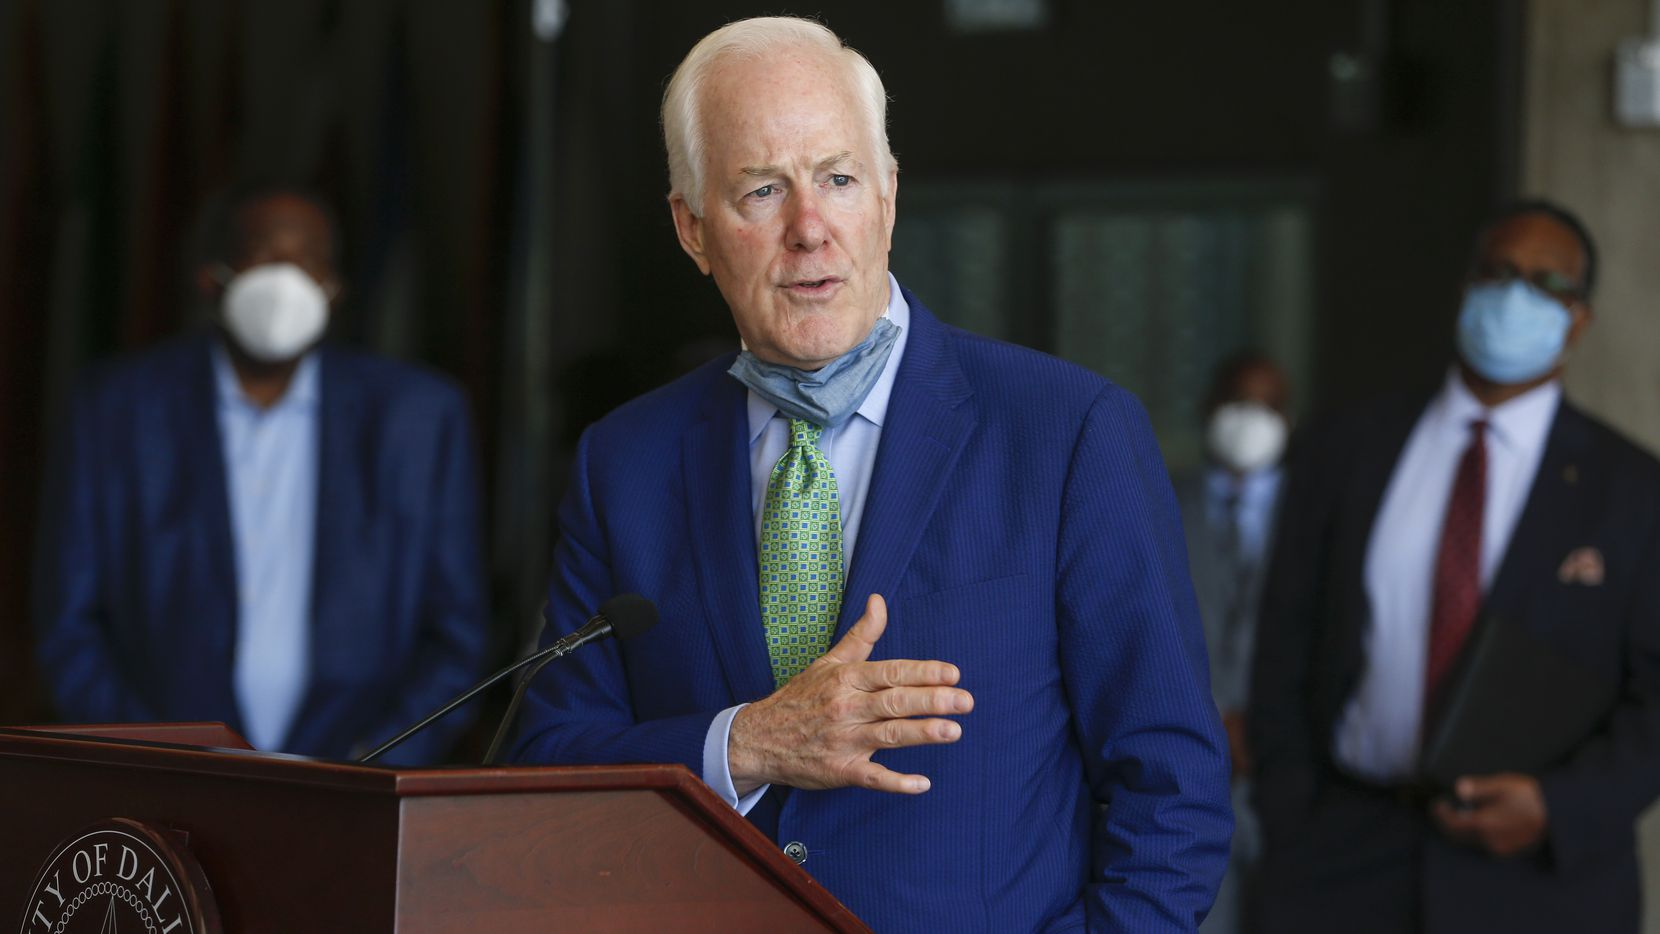 U.S. Senator John Cornyn, R-Texas, addresses members of the media following a law enforcement roundtable in June at City Hall in Dallas.